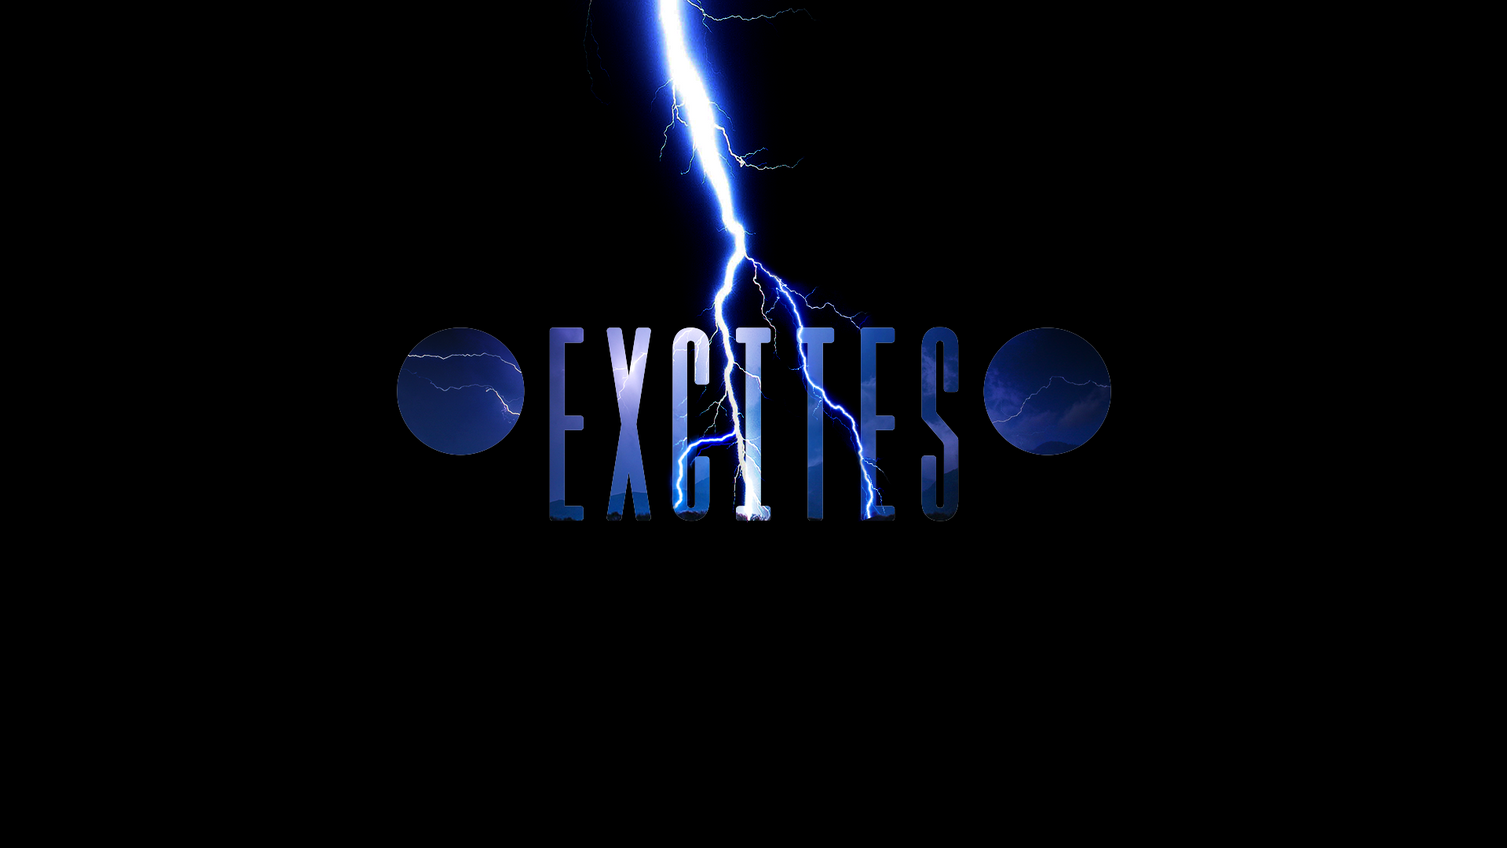 Excites_02.png